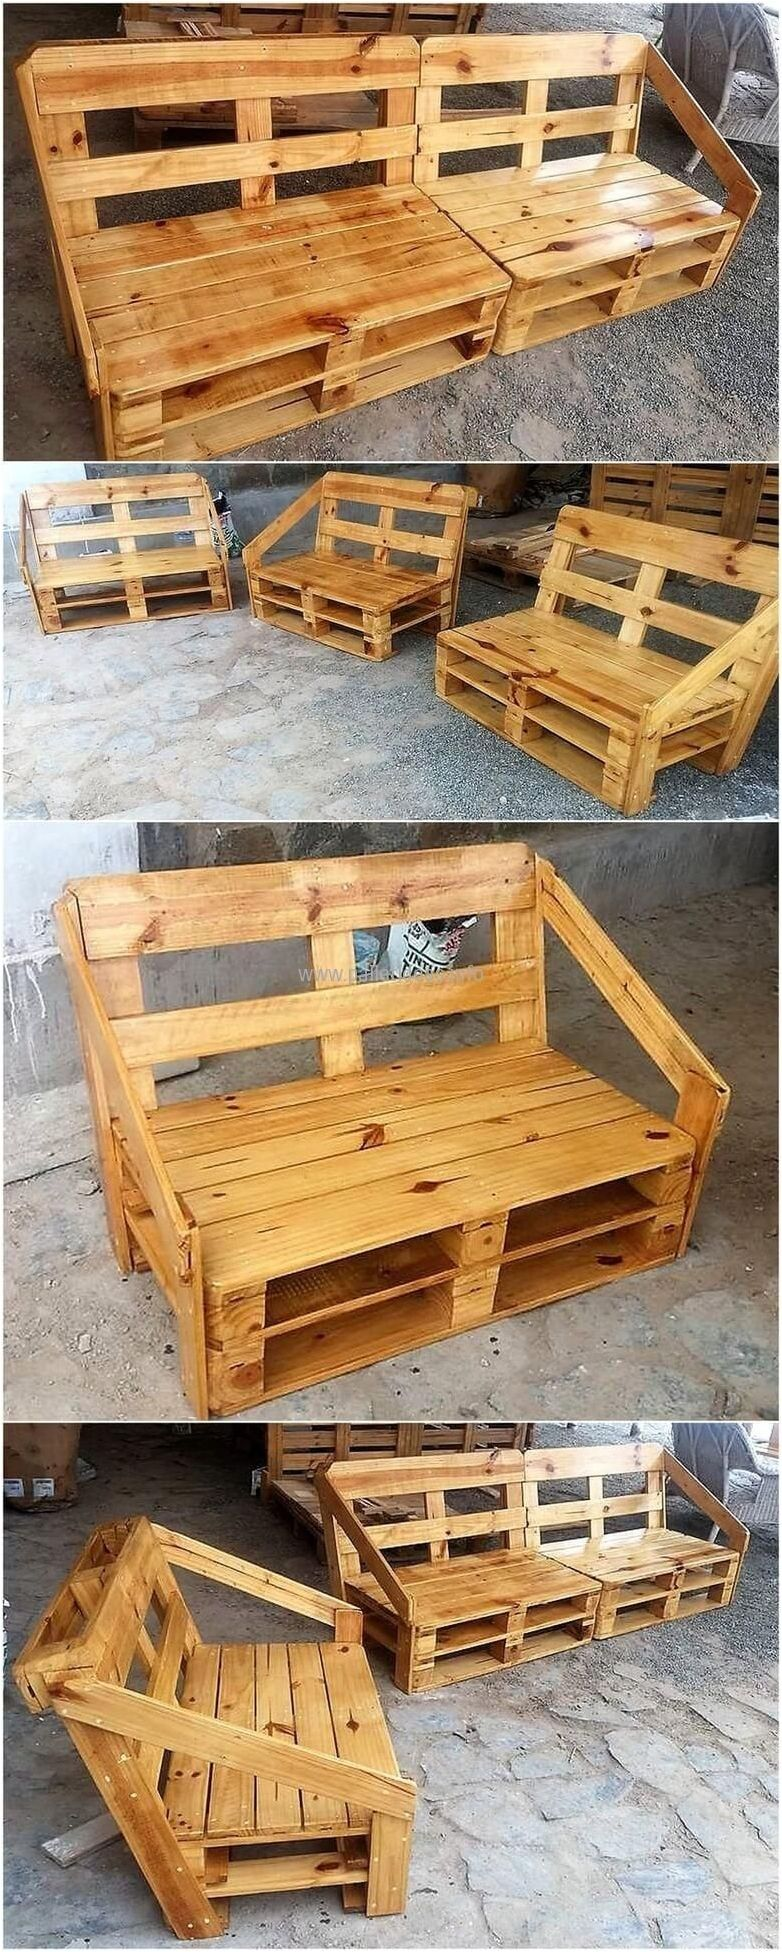 Pallet furniture living room have a completely unique and stylish